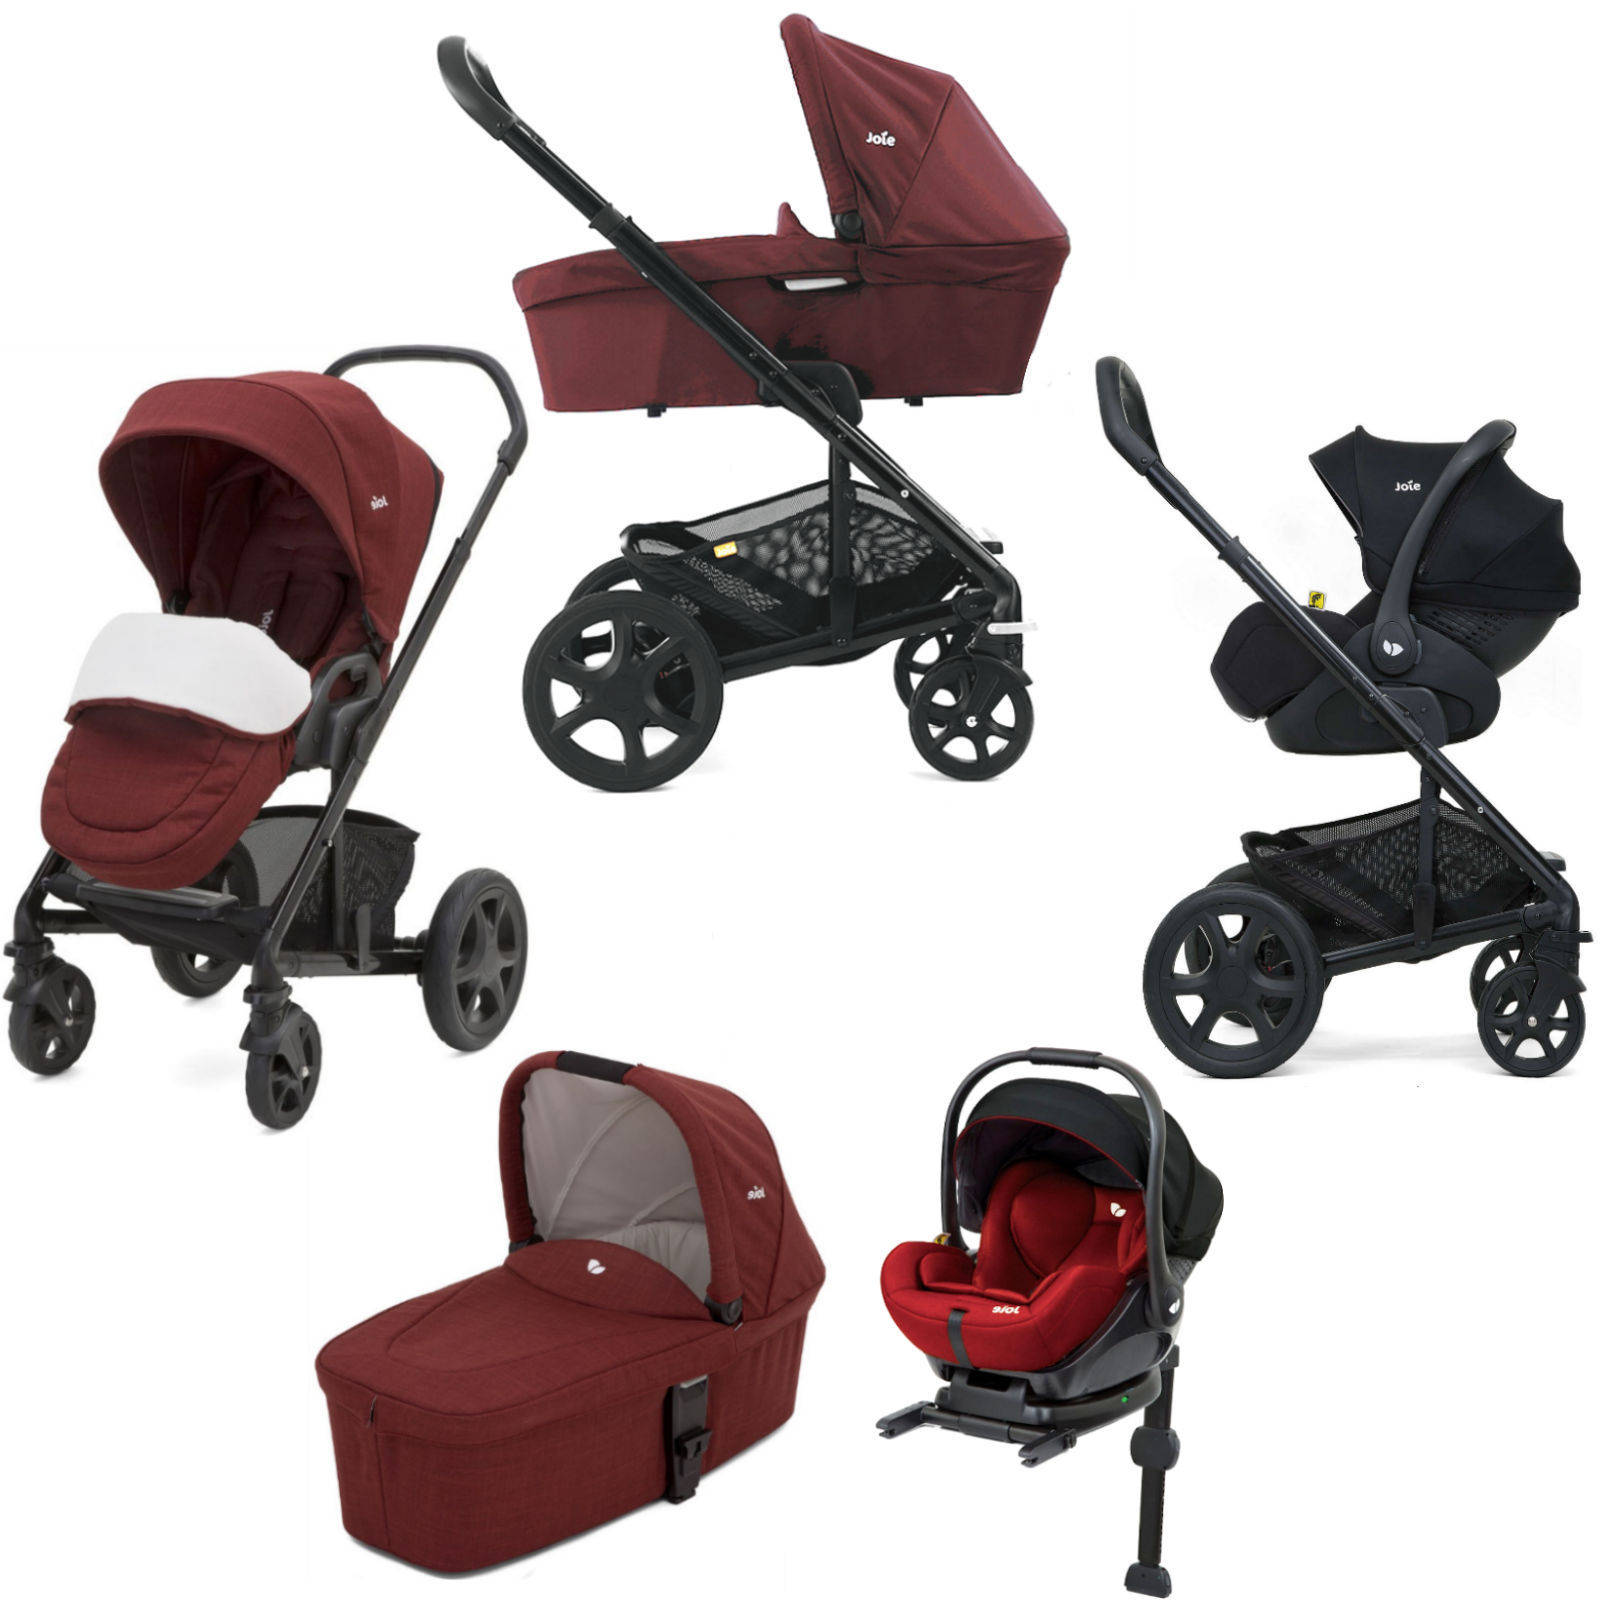 Joie Buggy Chrome Test Joie Chrome Dlx I Level Travel System With Carrycot Inc Footmuff Isofix Base Cranberry